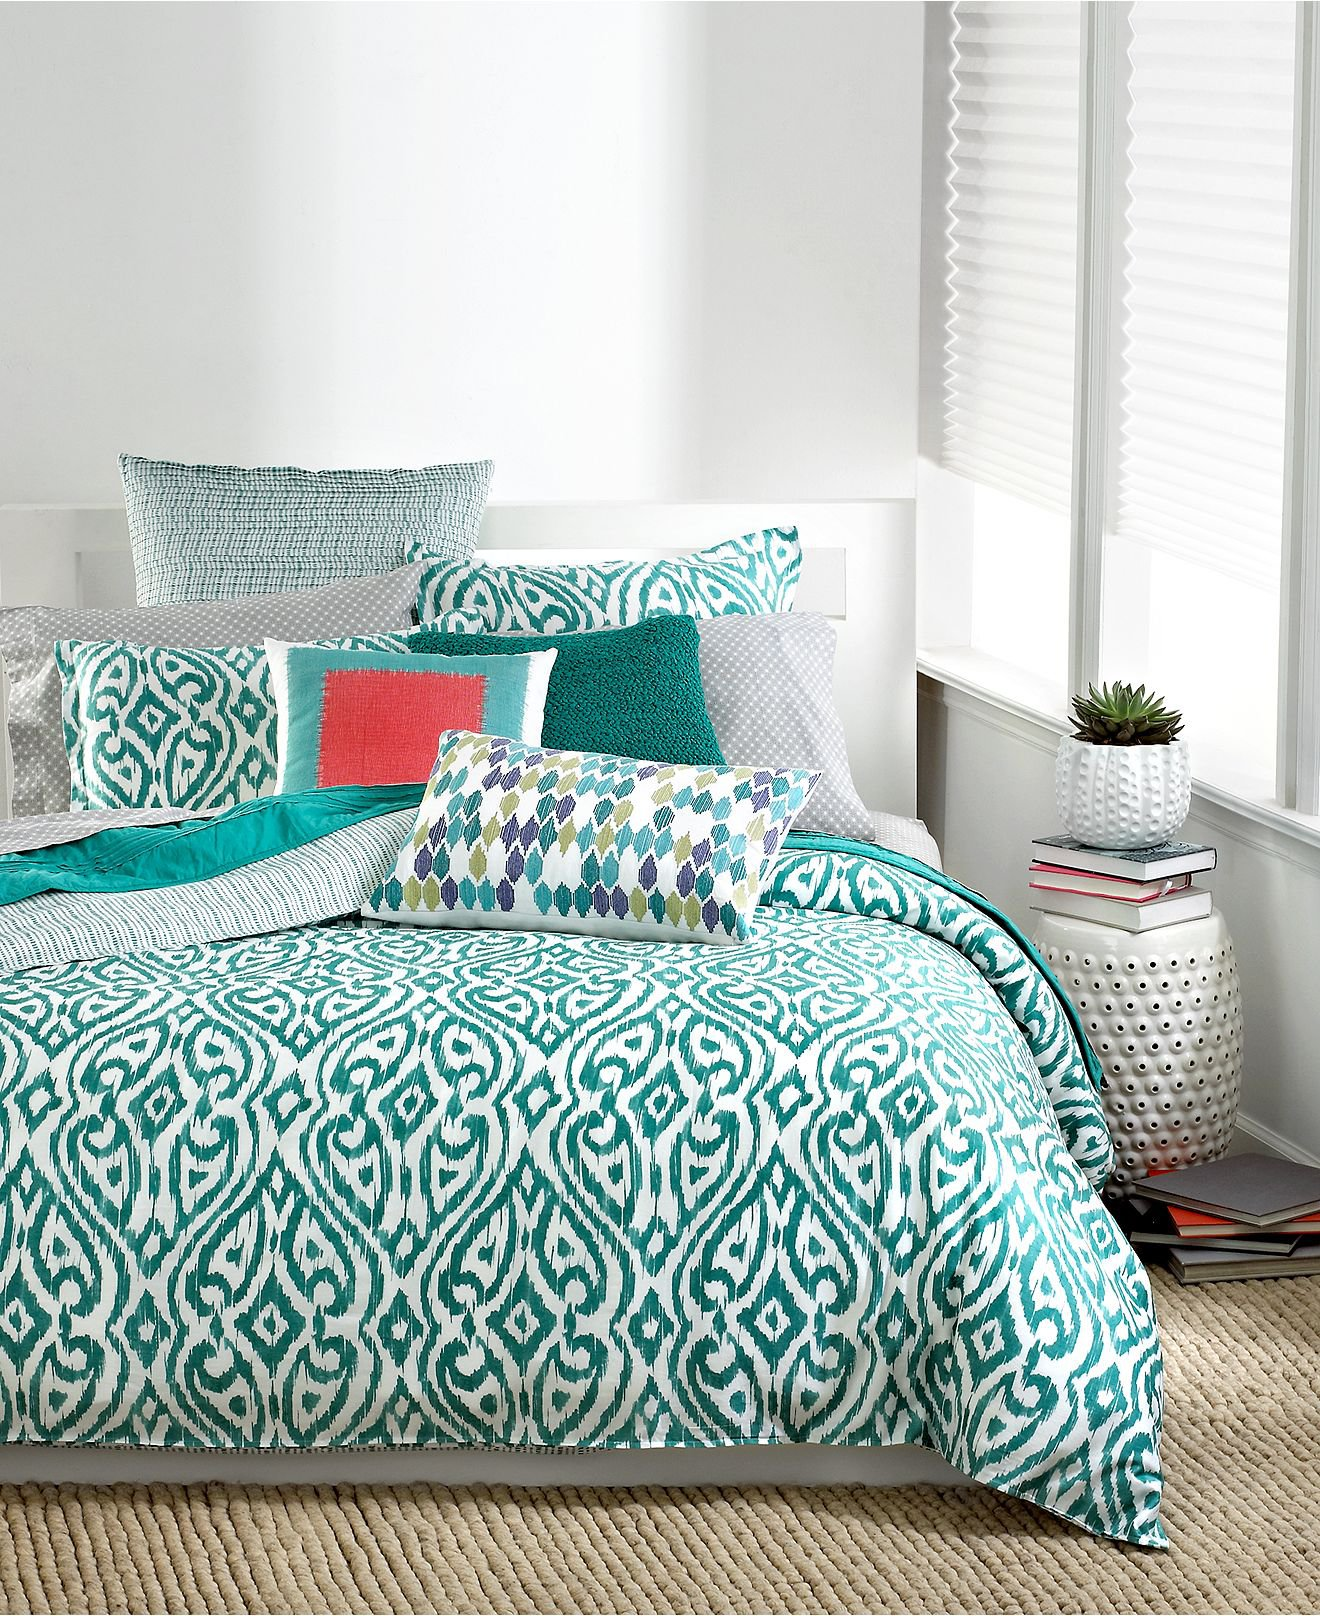 Bar III Bedding, Tali Collection - from Macys